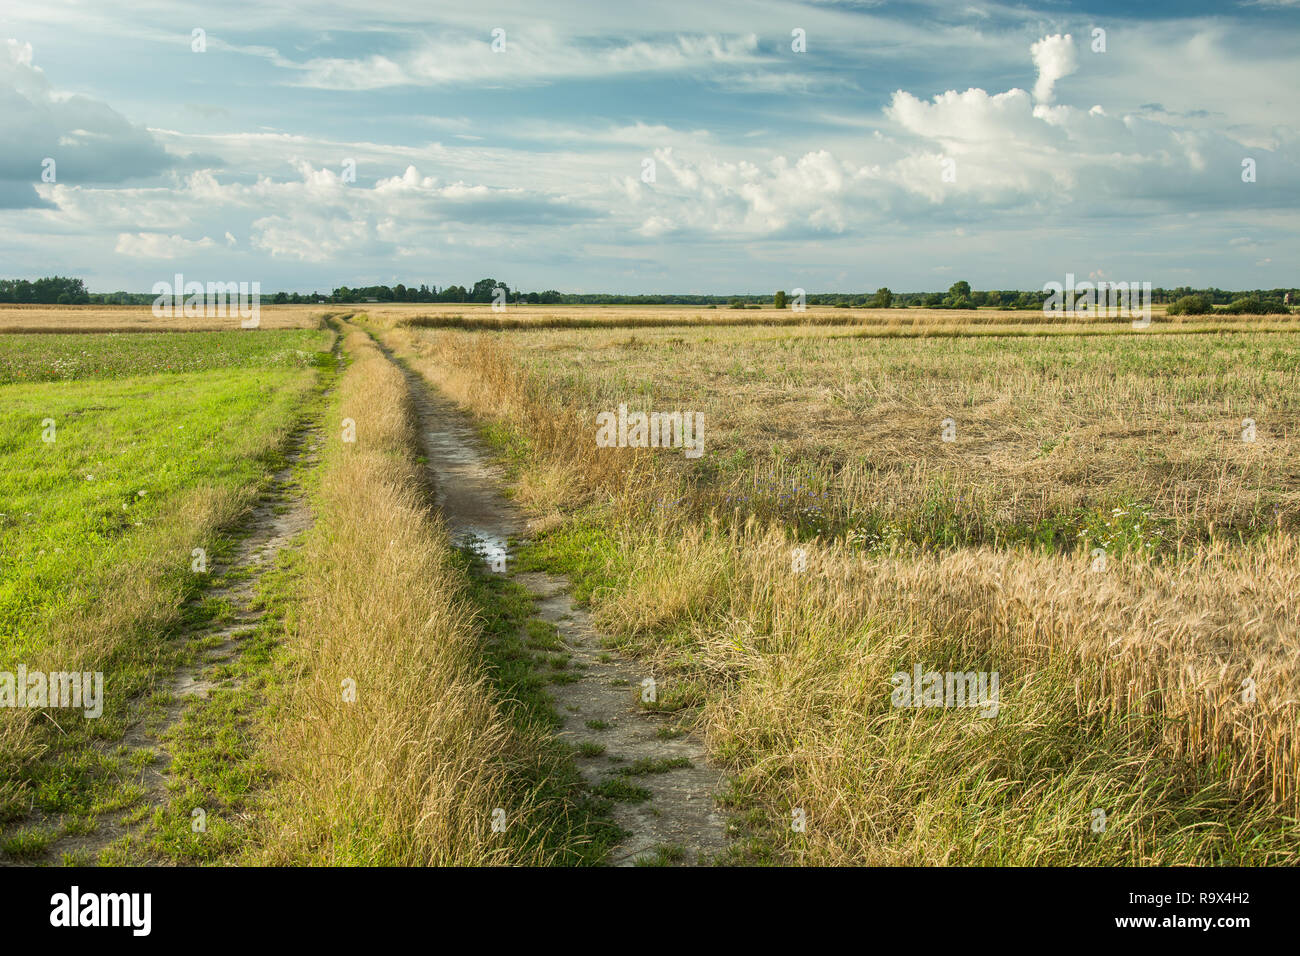 Unpaved road through the fields - Stock Image